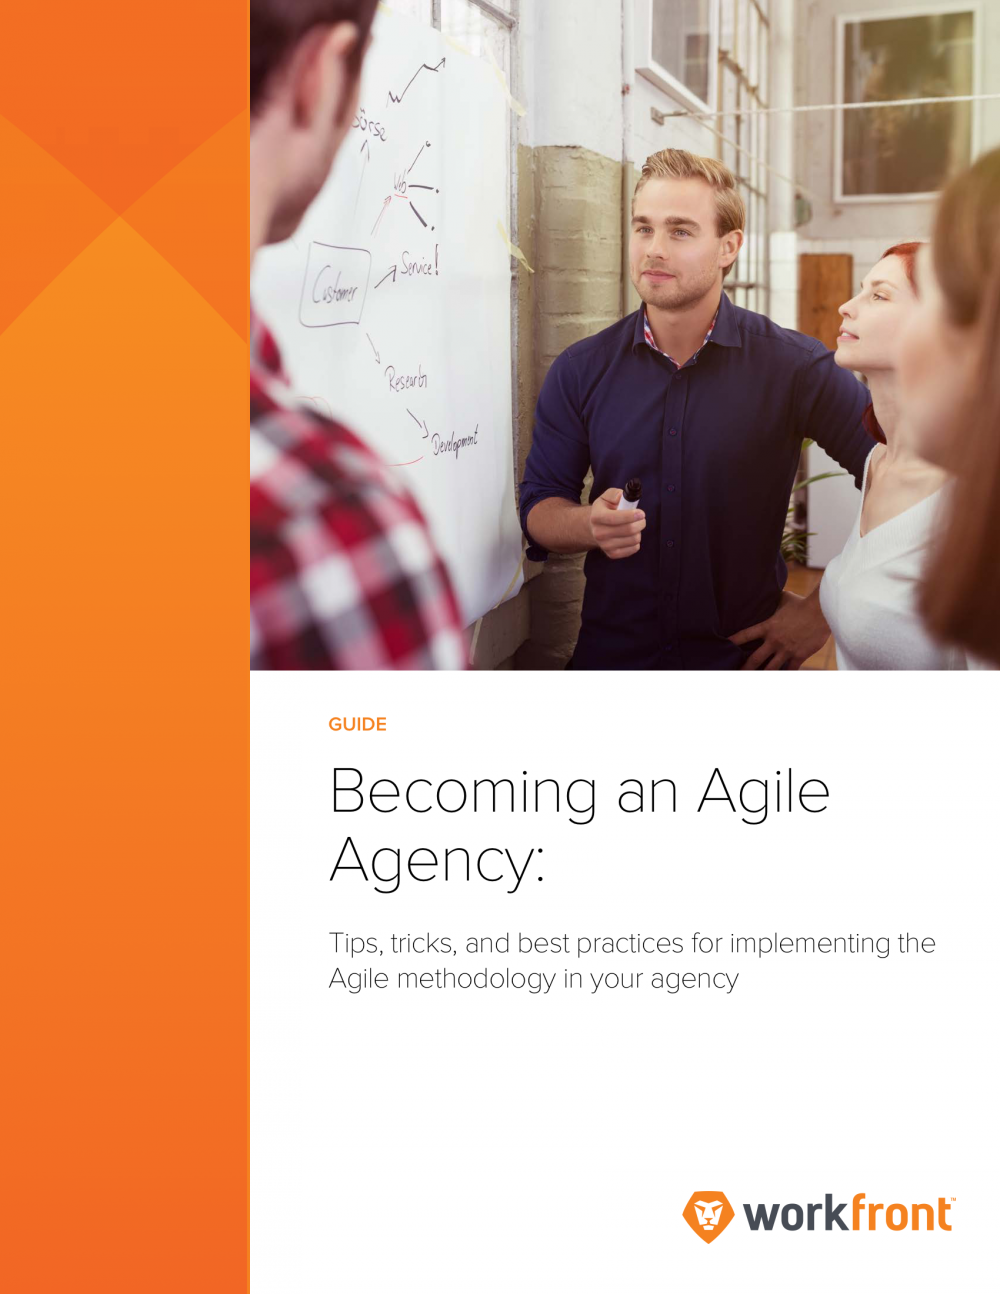 How to Become an Agile Agency